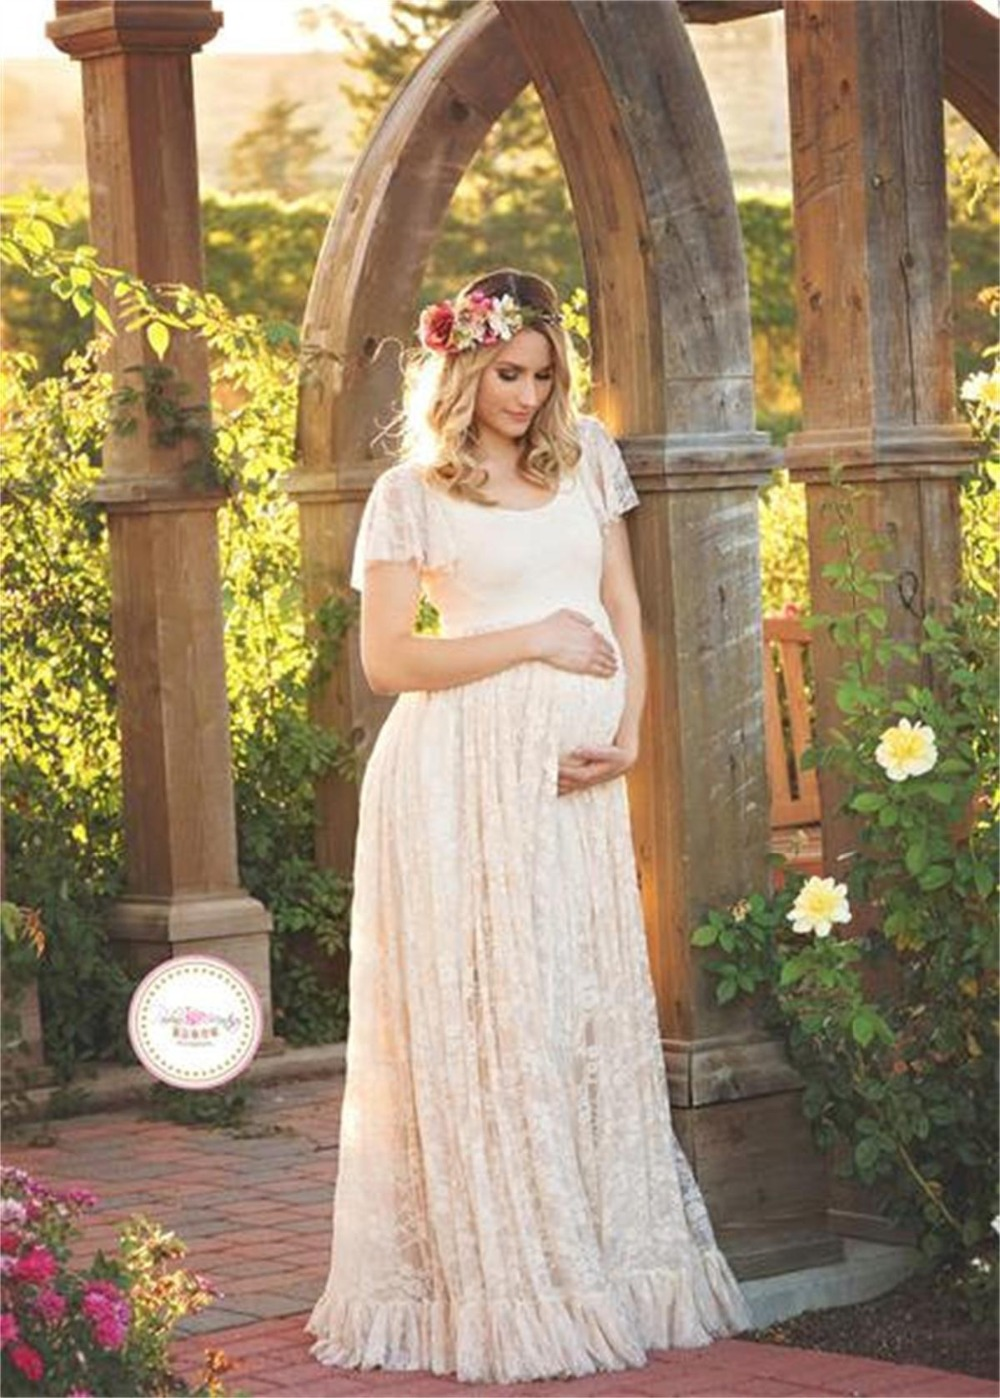 Reputable 2017 Women Skirt Maternity Photography Props Lace Pregnancy Closmaternity Dresses Pregnant Photo Shoot Dresses From Kids 2017 Women Skirt Maternity Photography Props Lace Pregnancy photos Maternity Dresses For Photoshoot